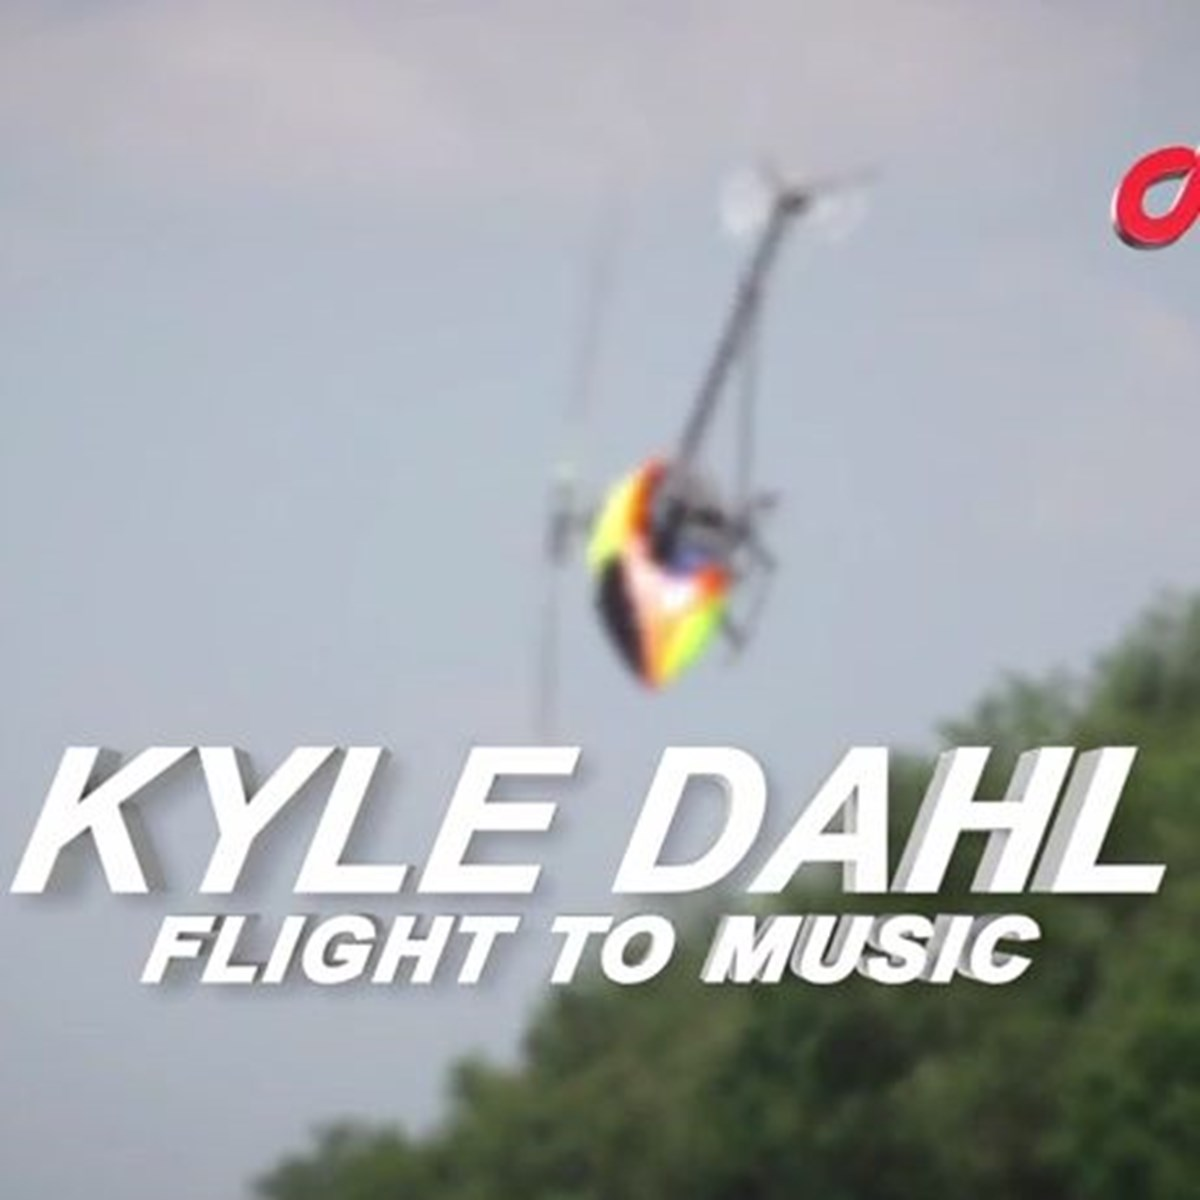 Kyle Dahl - Flight to music- Heli Masters 2013